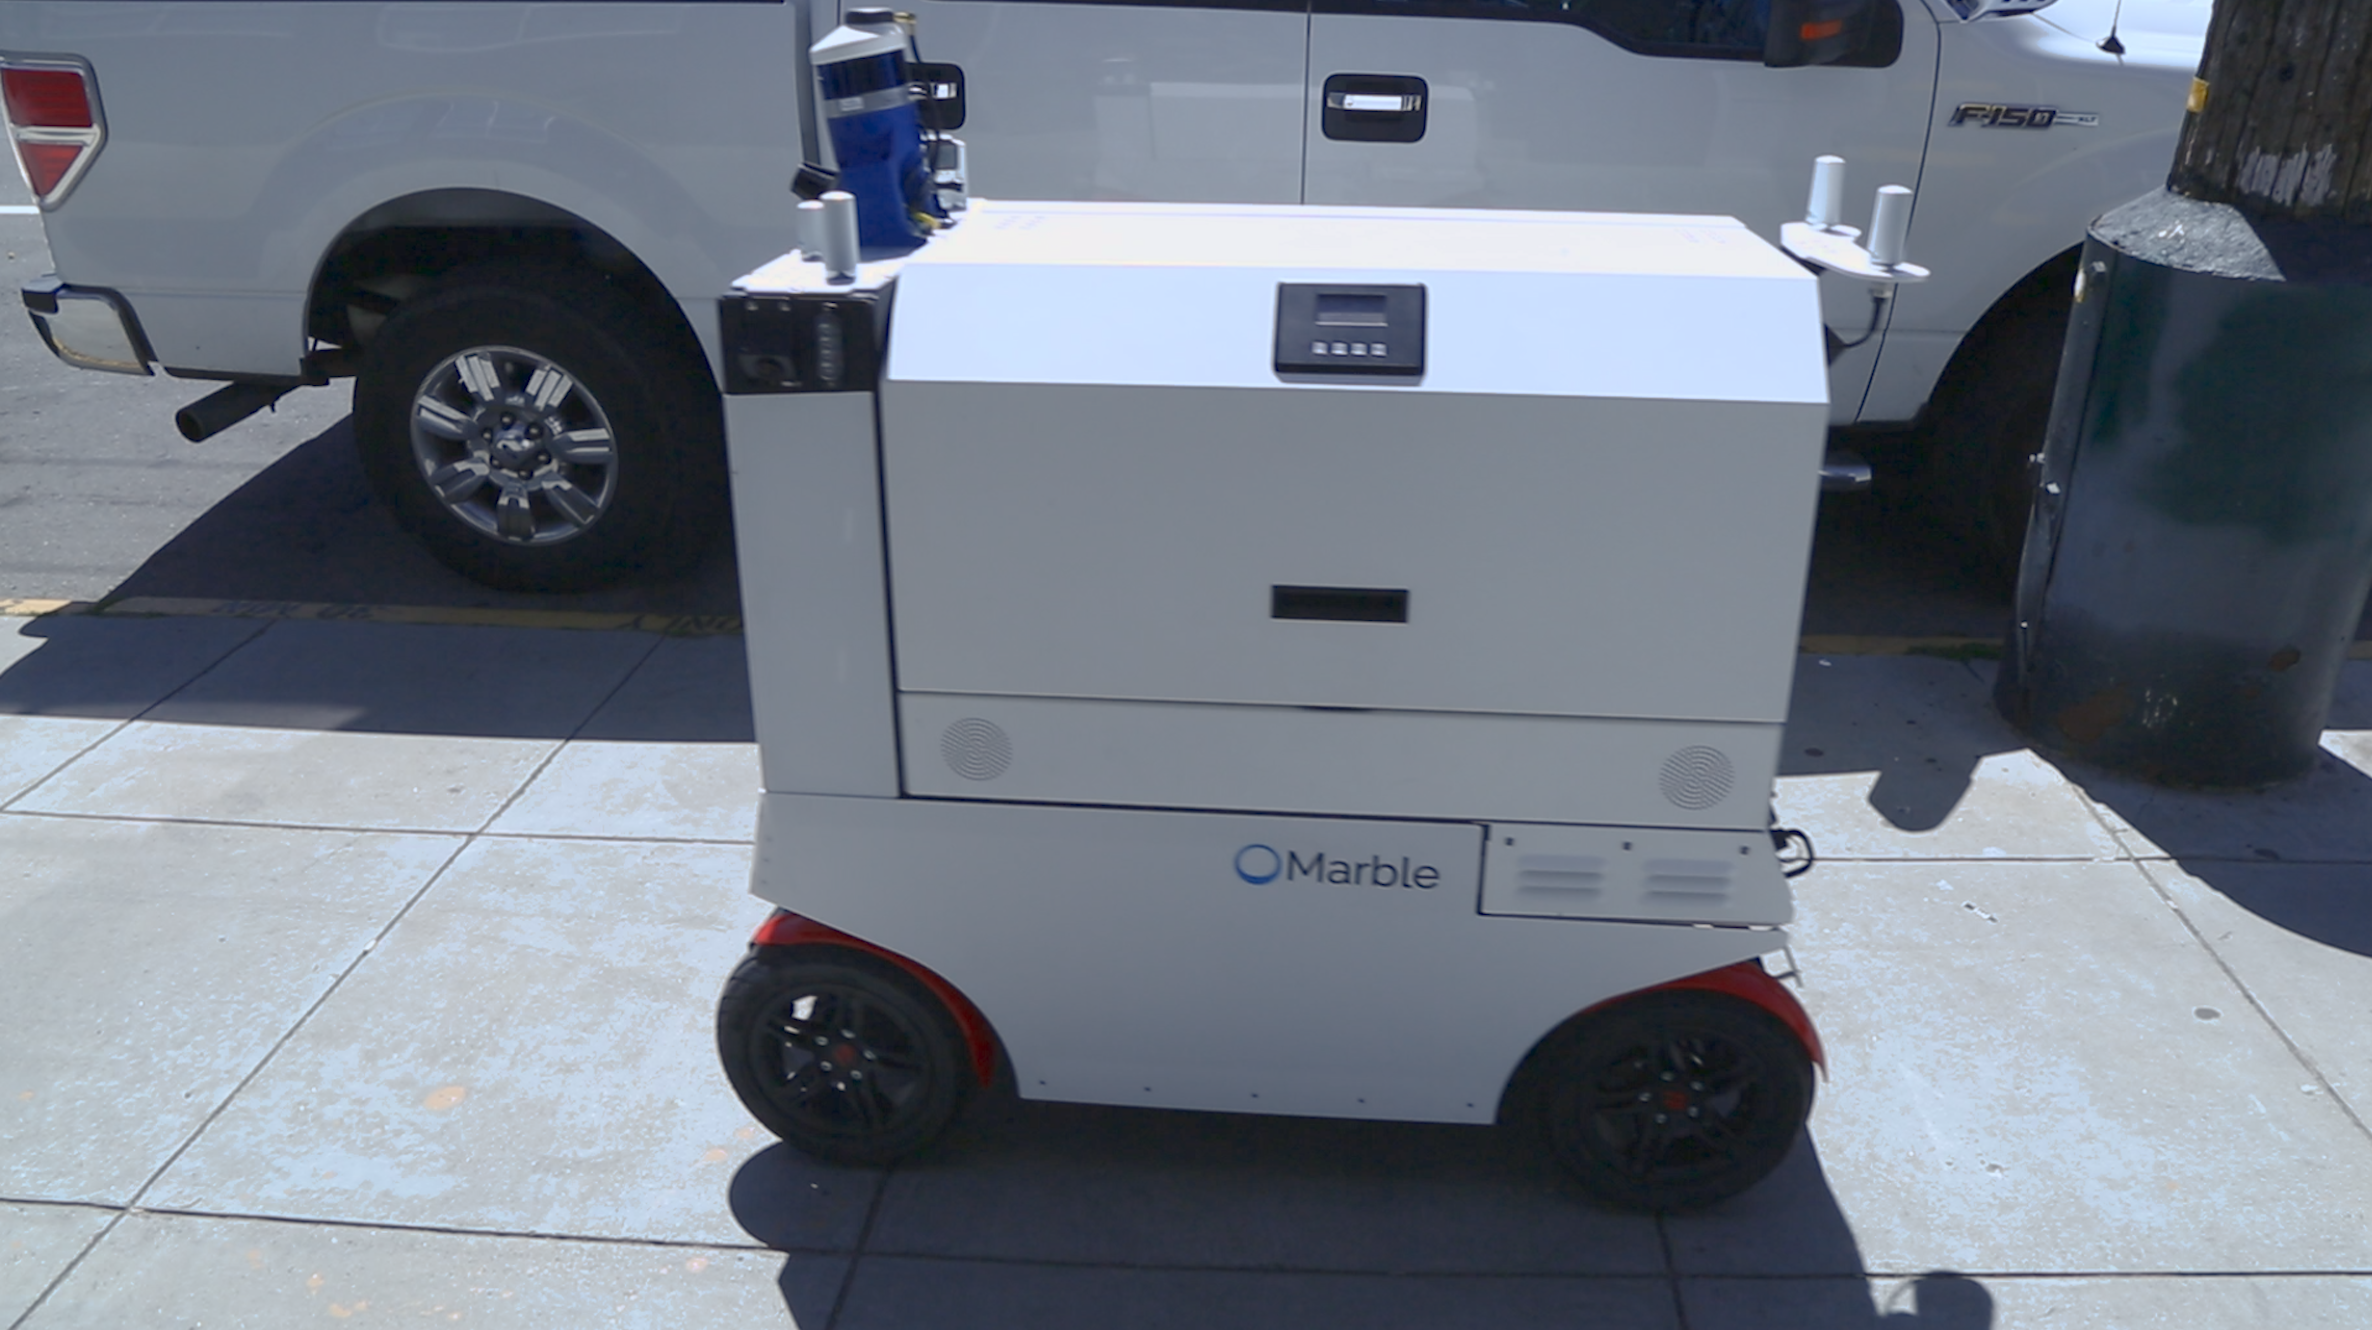 Marble delivery robot